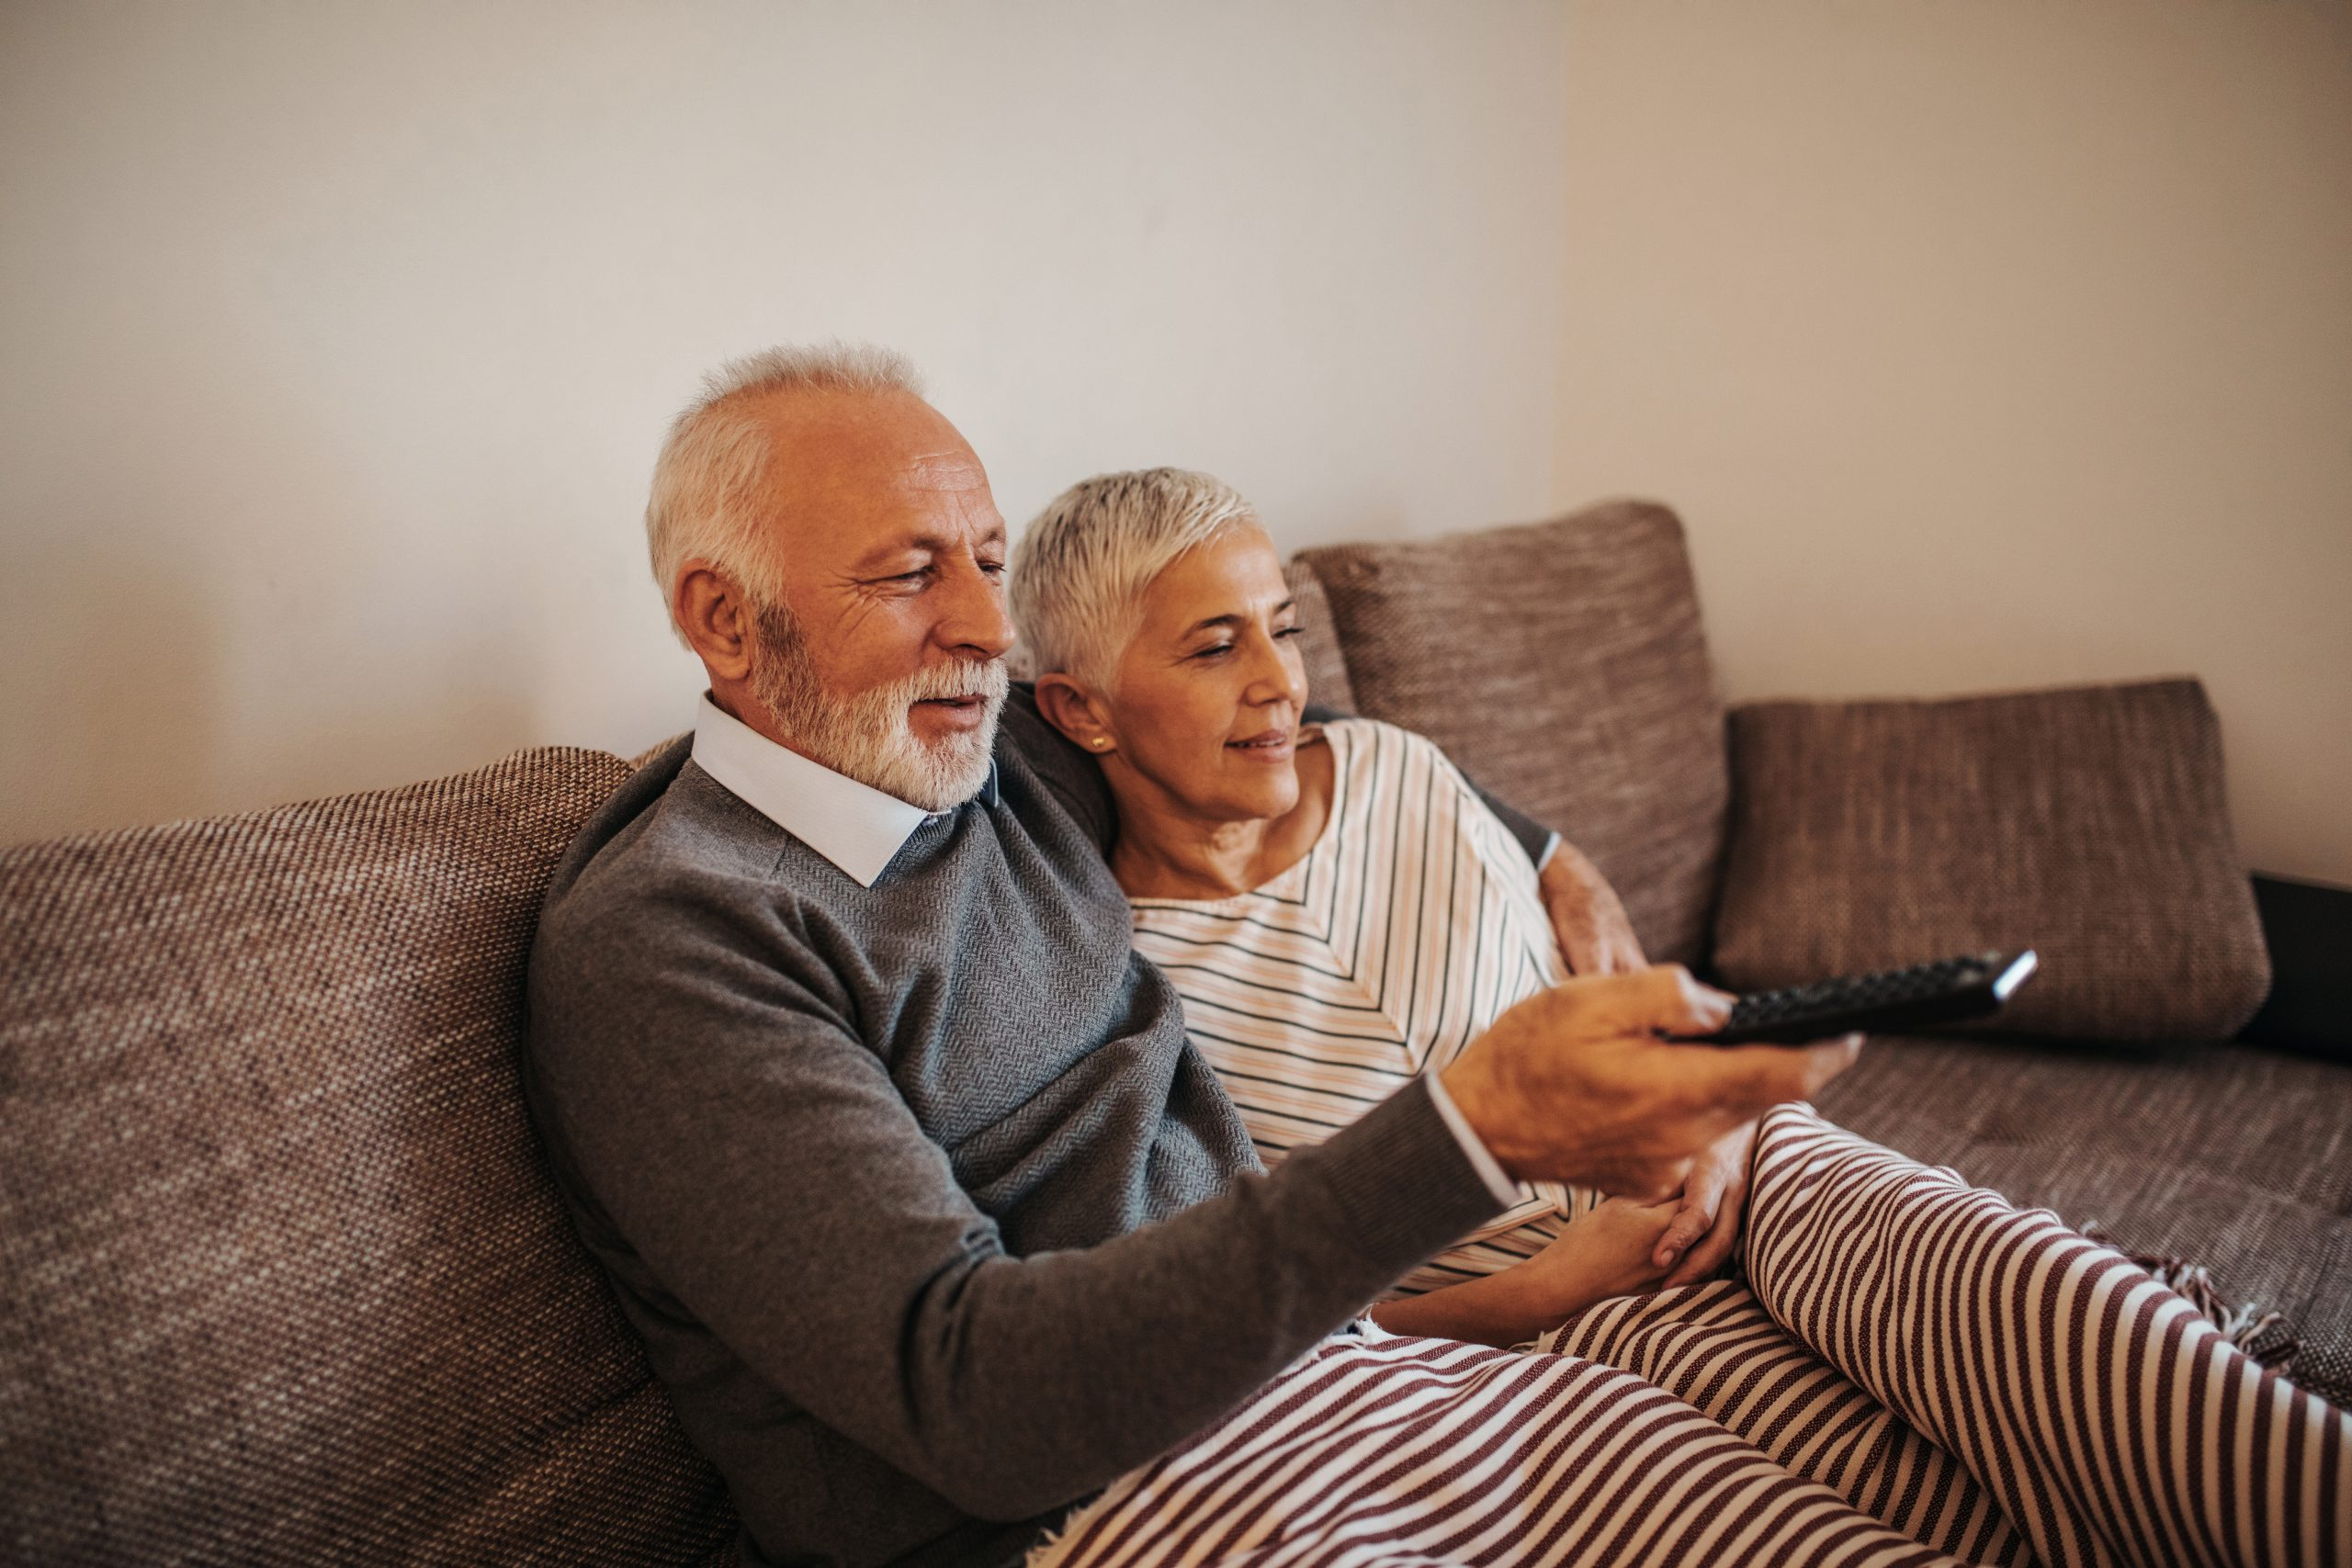 Elderly couple watching television at home